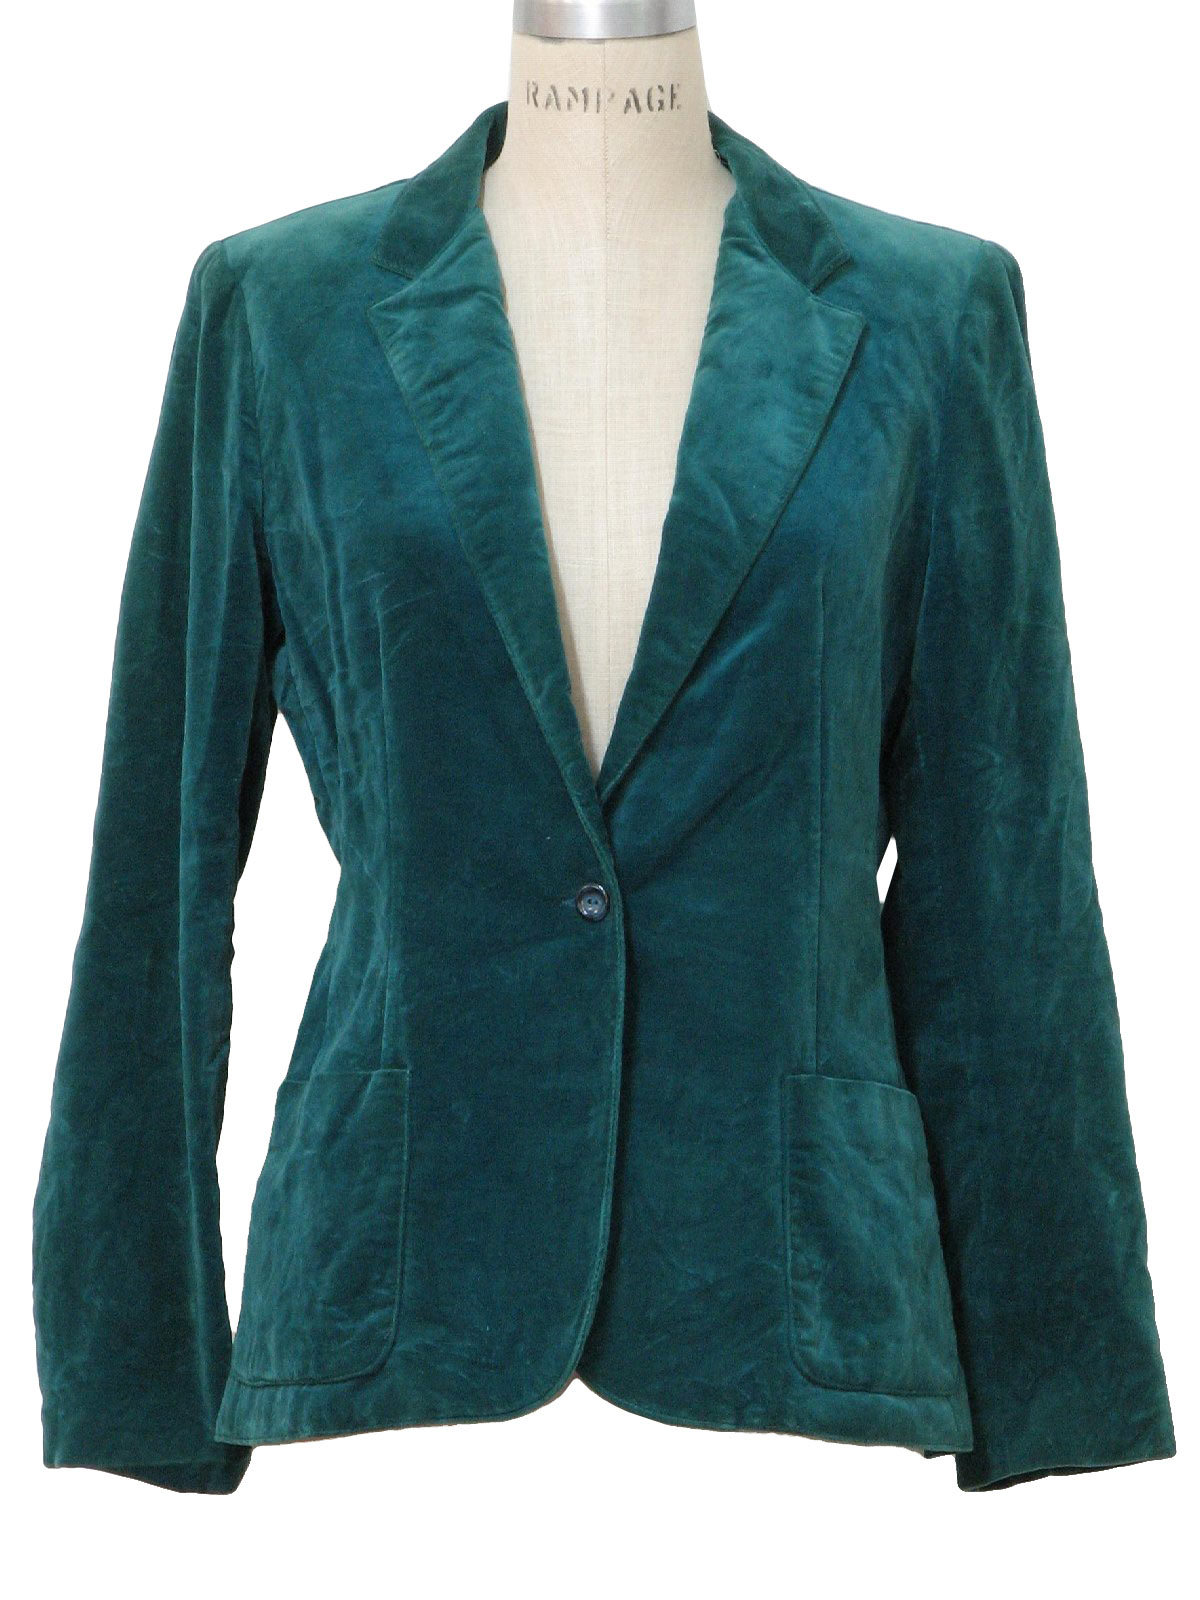 The Madison Blazer. Blazers for Men and Women. Made in USA. Made in USA. Contemporary Styling Blazers and Sportcoats. 55/45 Poly Wool Blended from America's Finest Mills. Available for both Men and Women. 2 Button Flap Pockets. teal blazers. Men's blazers. Women's blazers. Children's blazers.